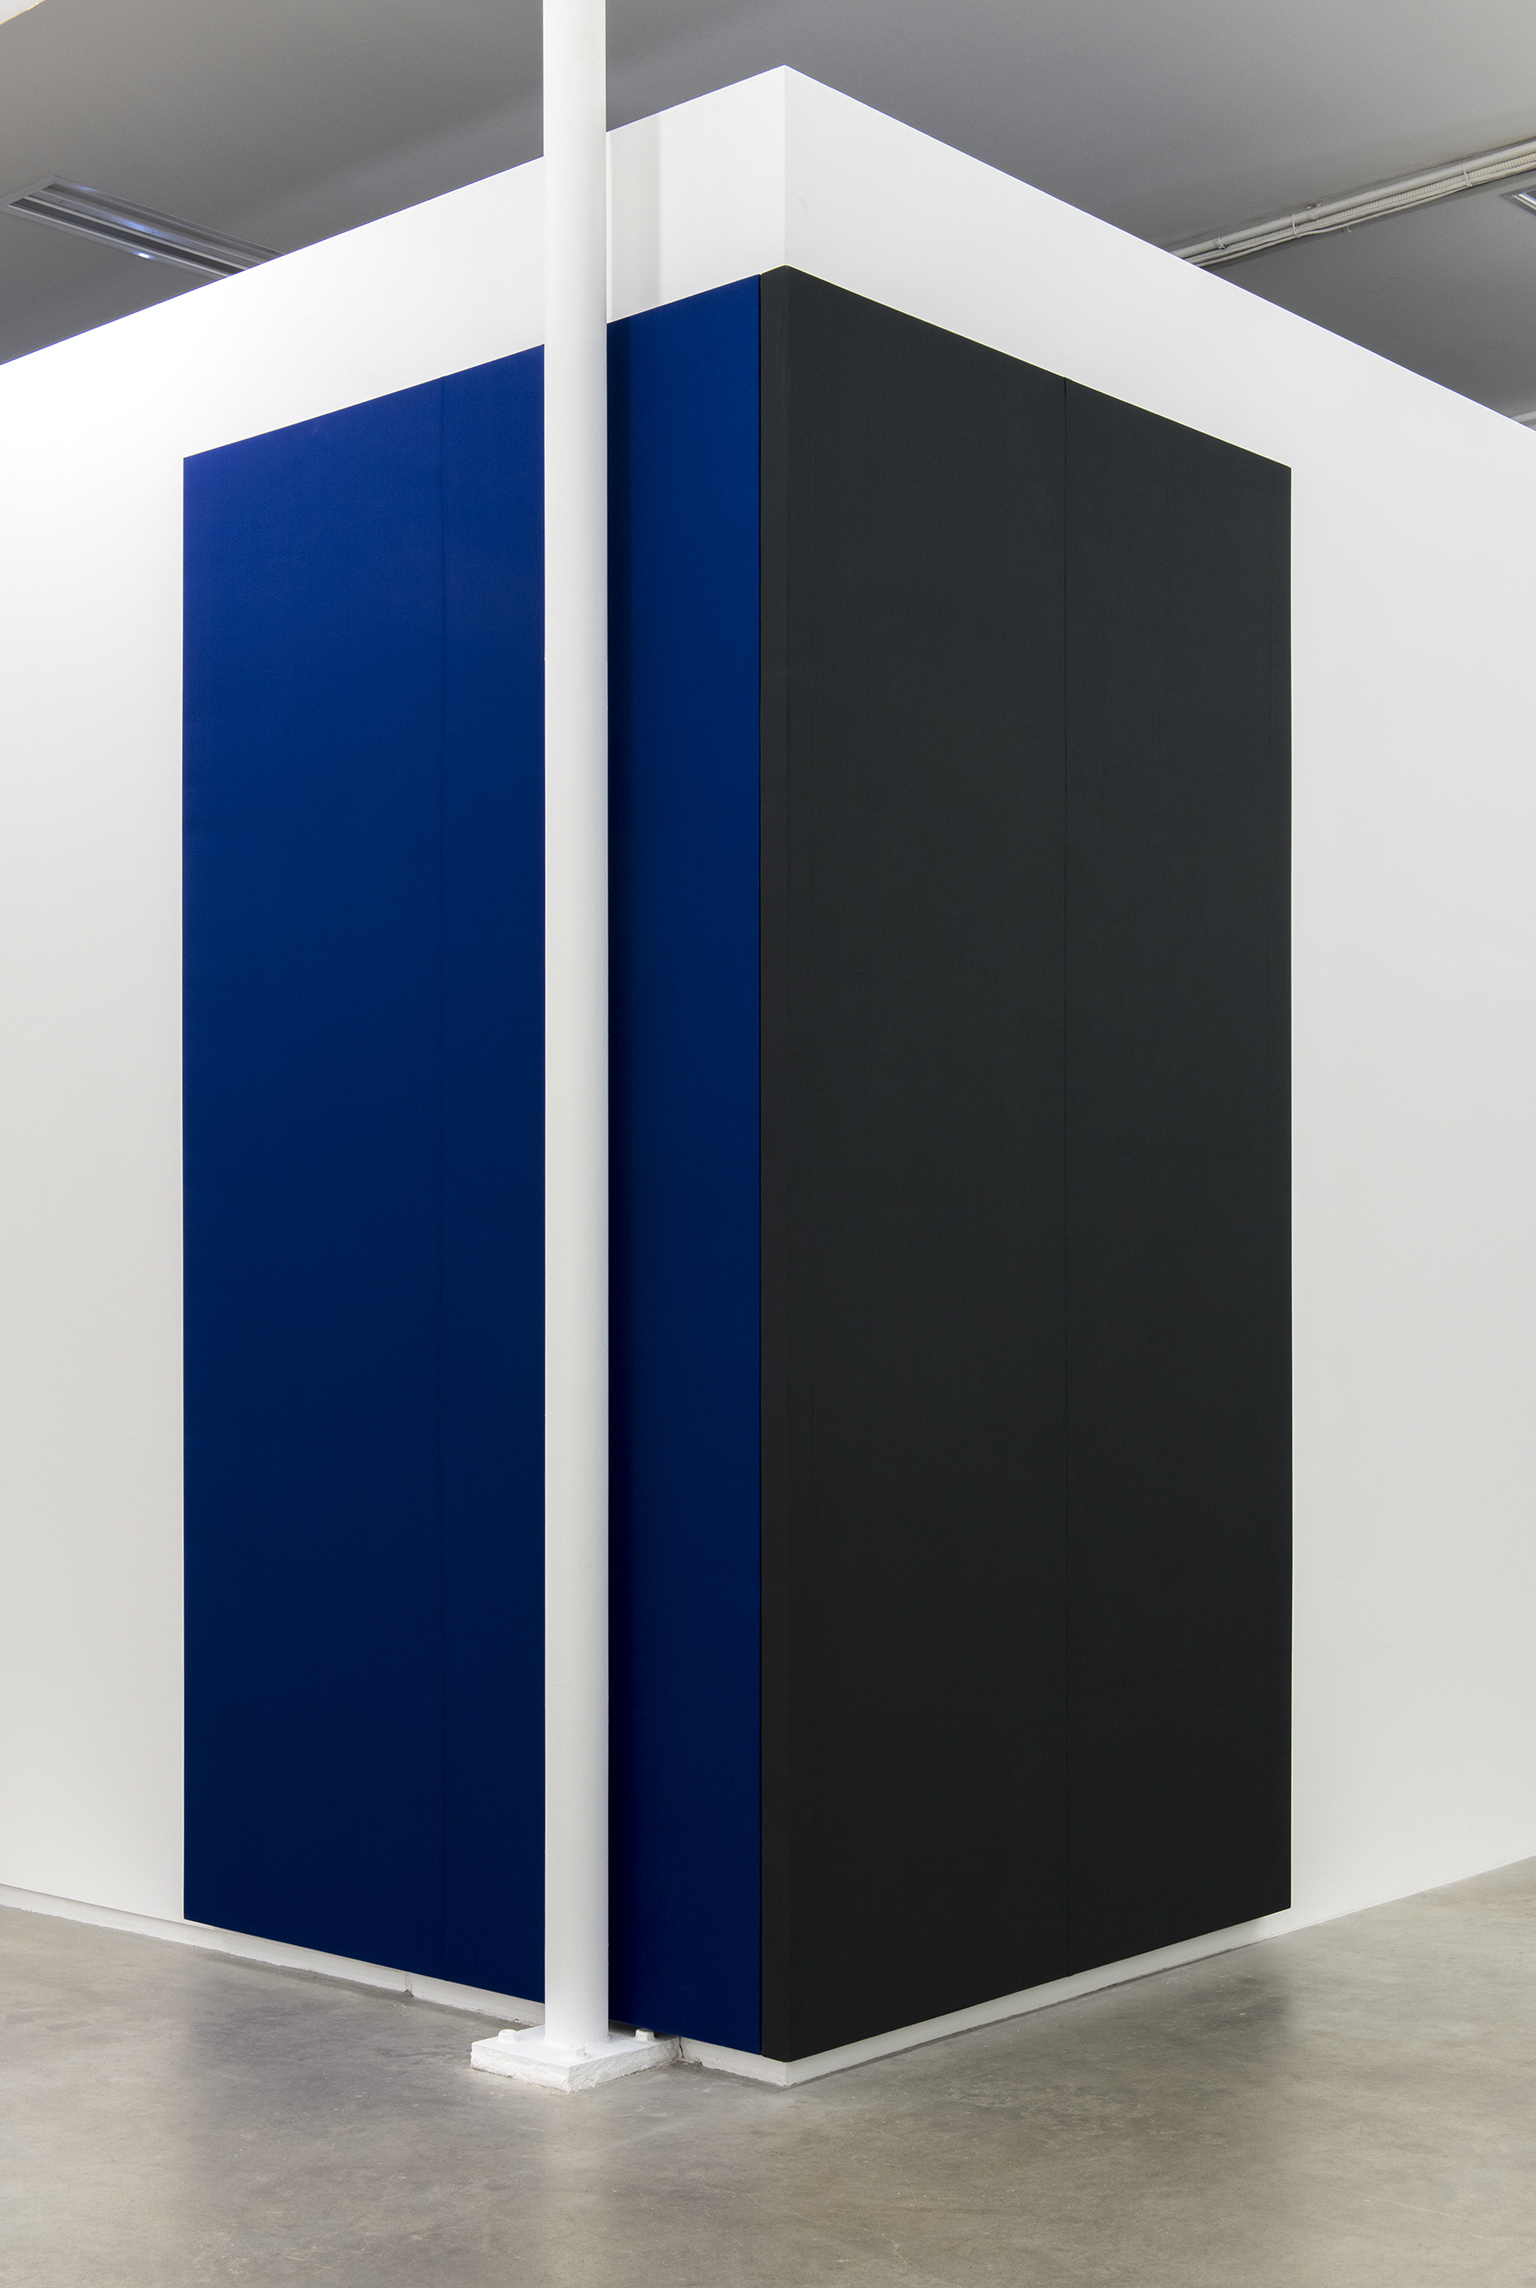 Andrea Büttner, Fabric Painting (diptych), 2013, cotton twill, each 127 x 66 x 3 in. (323 x 168 x 6 cm) by